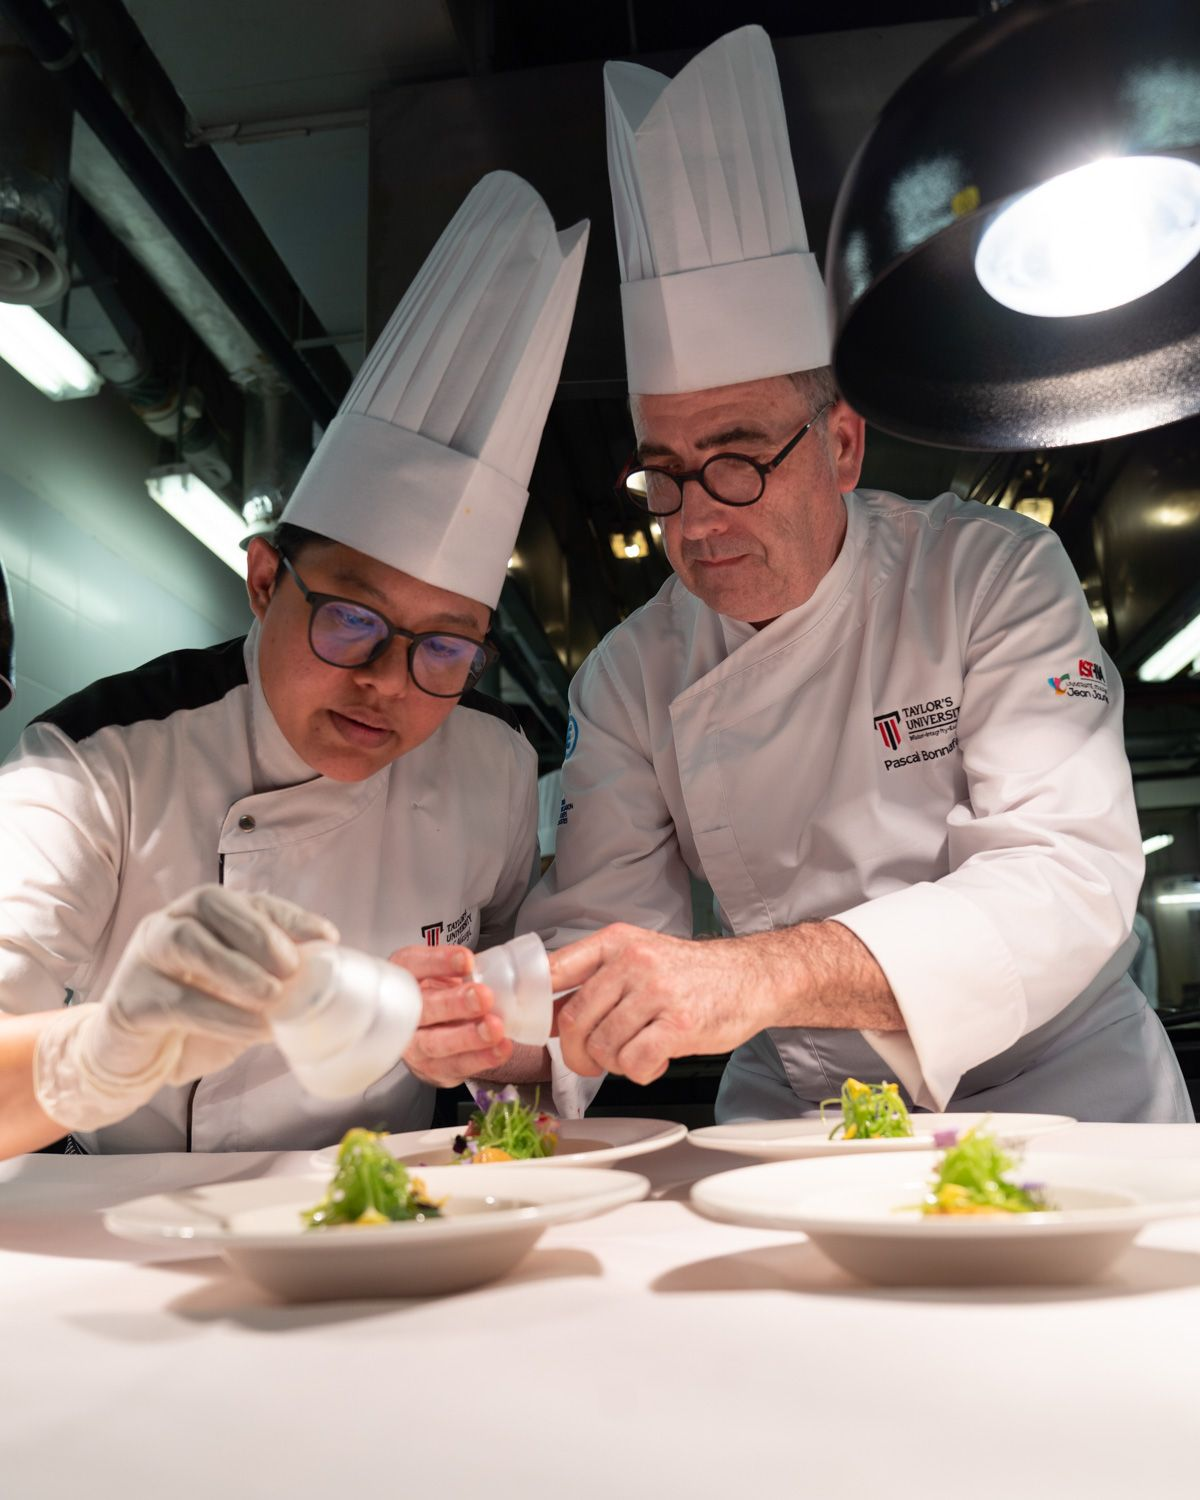 TCI lecturer Chef Massyittah Omar (left) and University of Toulouse lecturer Chef Pascal Bonnafous at work. The opportunity to collaborate with the right partners, such as the University of Toulouse, gives TCI students experiences that will boost their confidence, learning and overall experience.